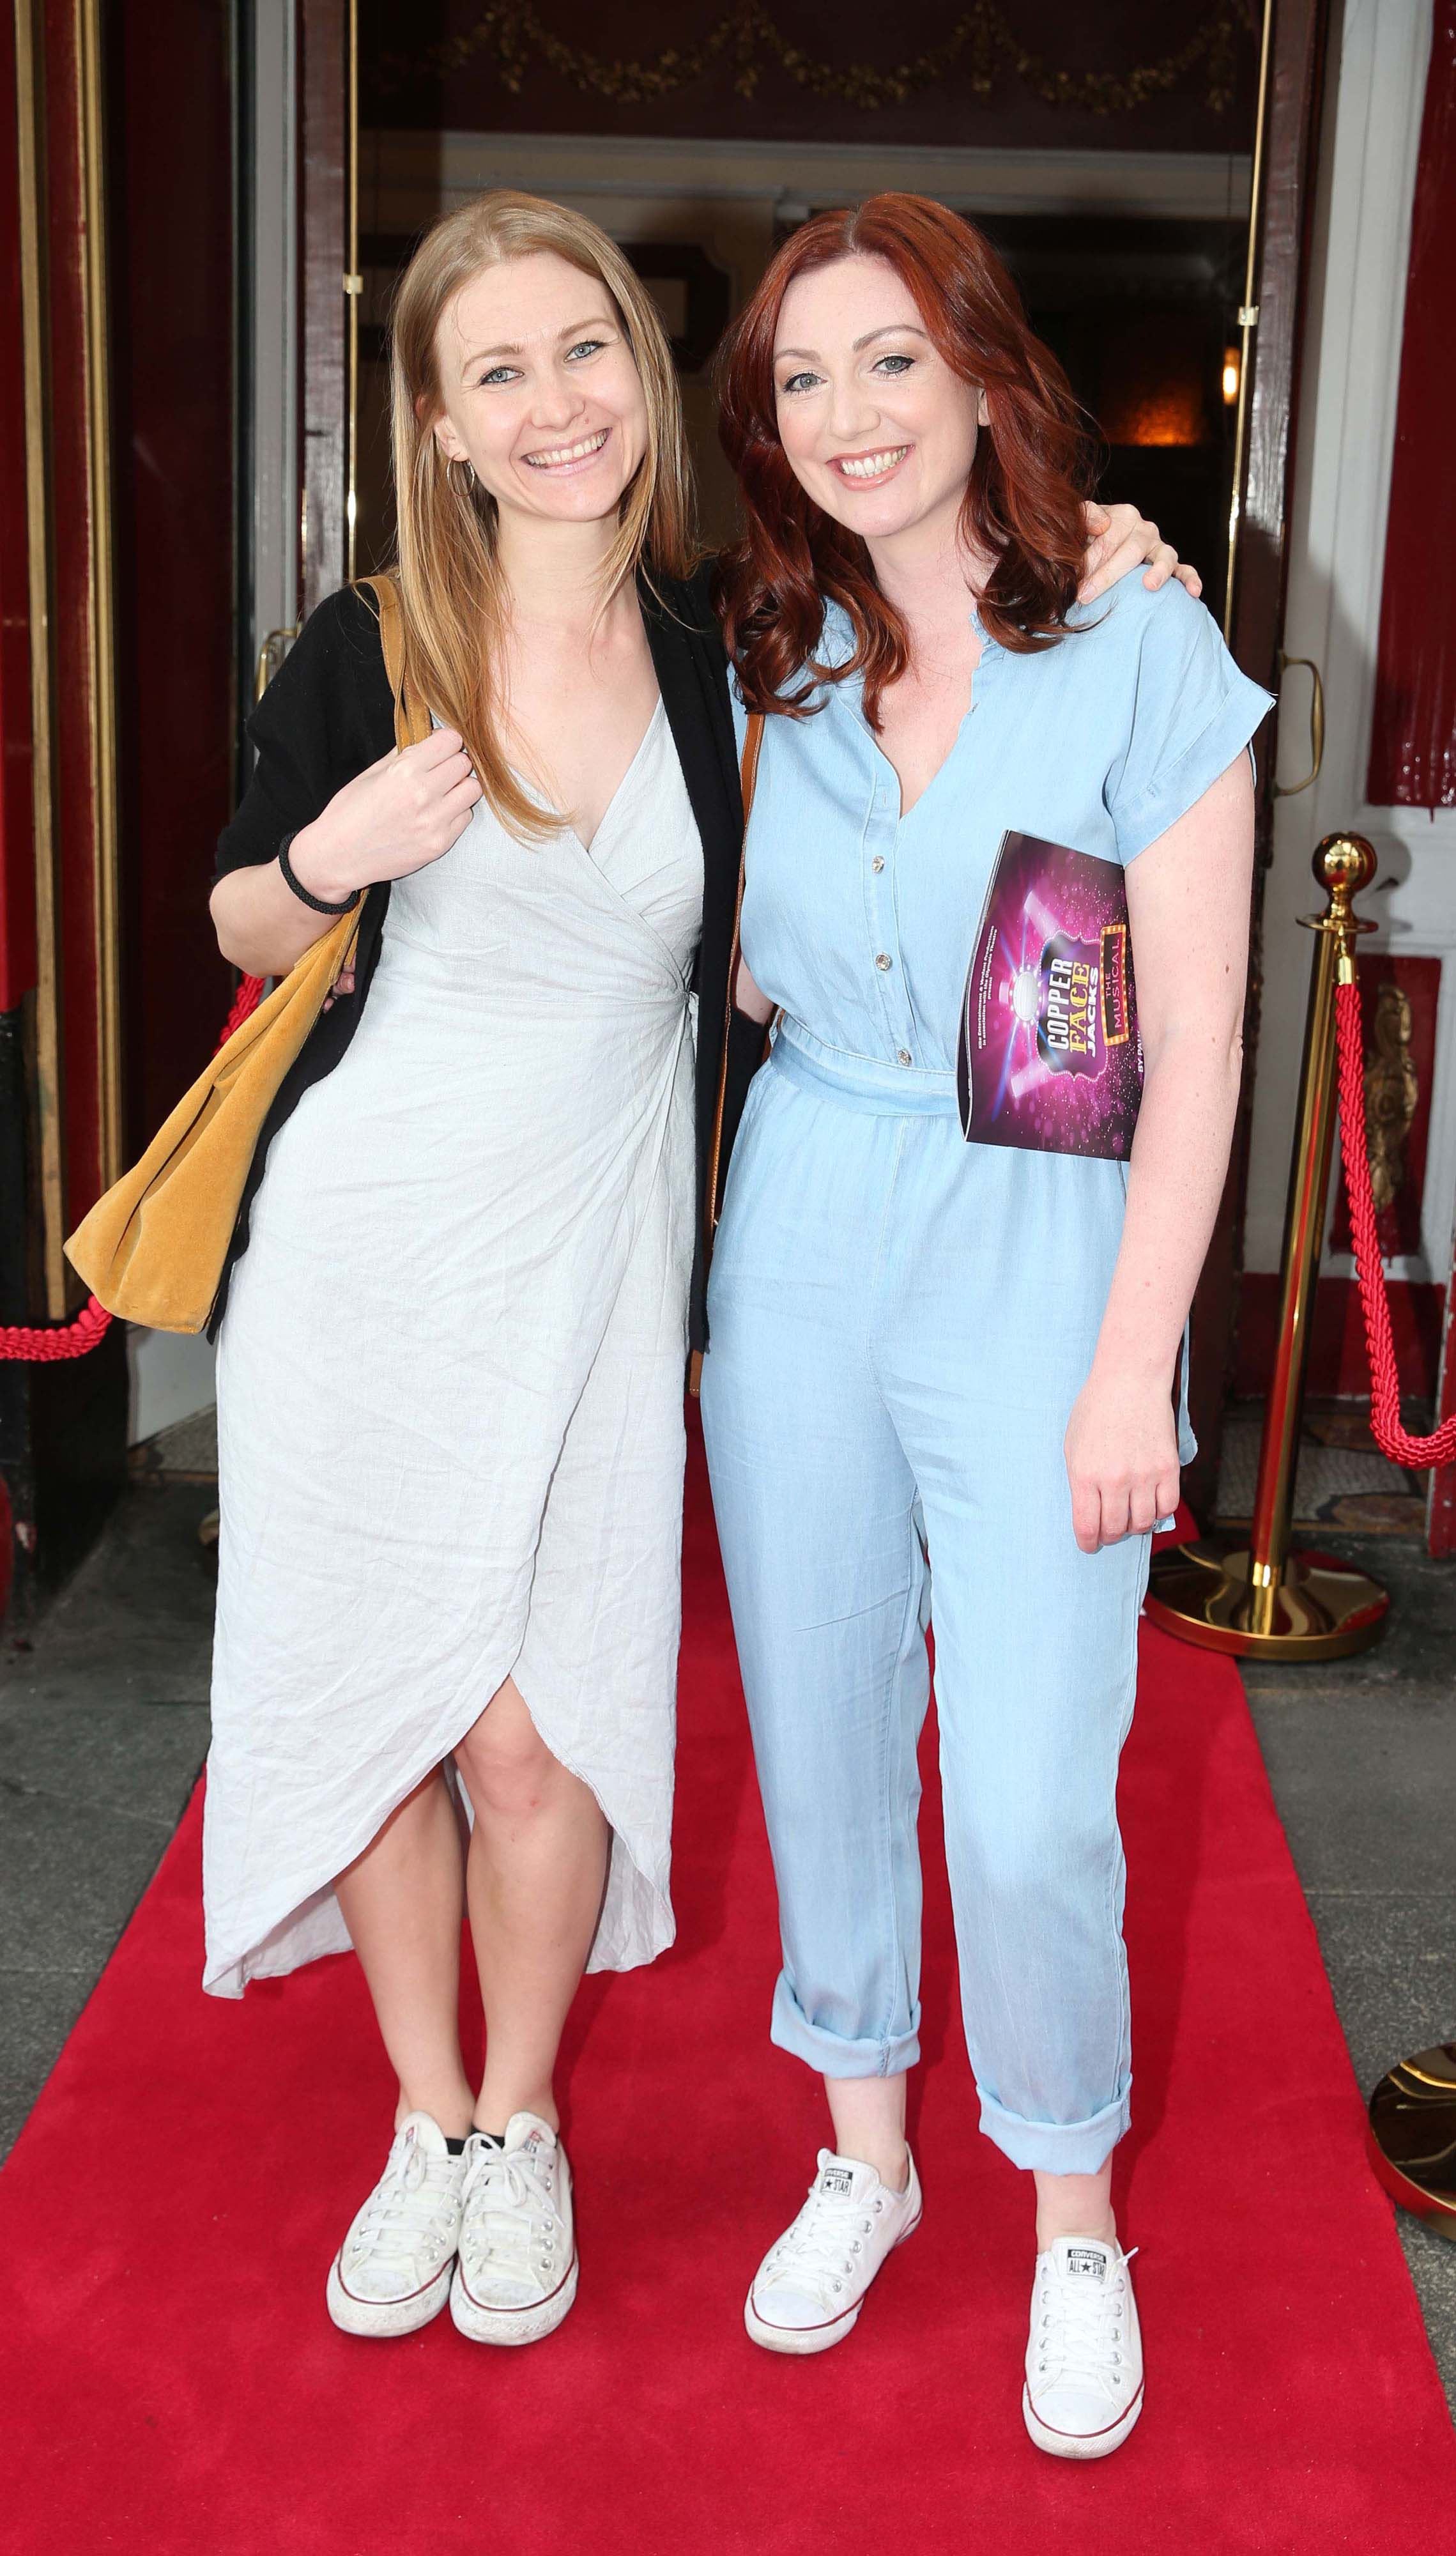 urses Gill Carty and Cara Carton at the opening night of  Copper Face Jacks The Musical at  the Olympia Theatre which  runs until the 10th August.Photo: Leon Farrell/Photocall Ireland.